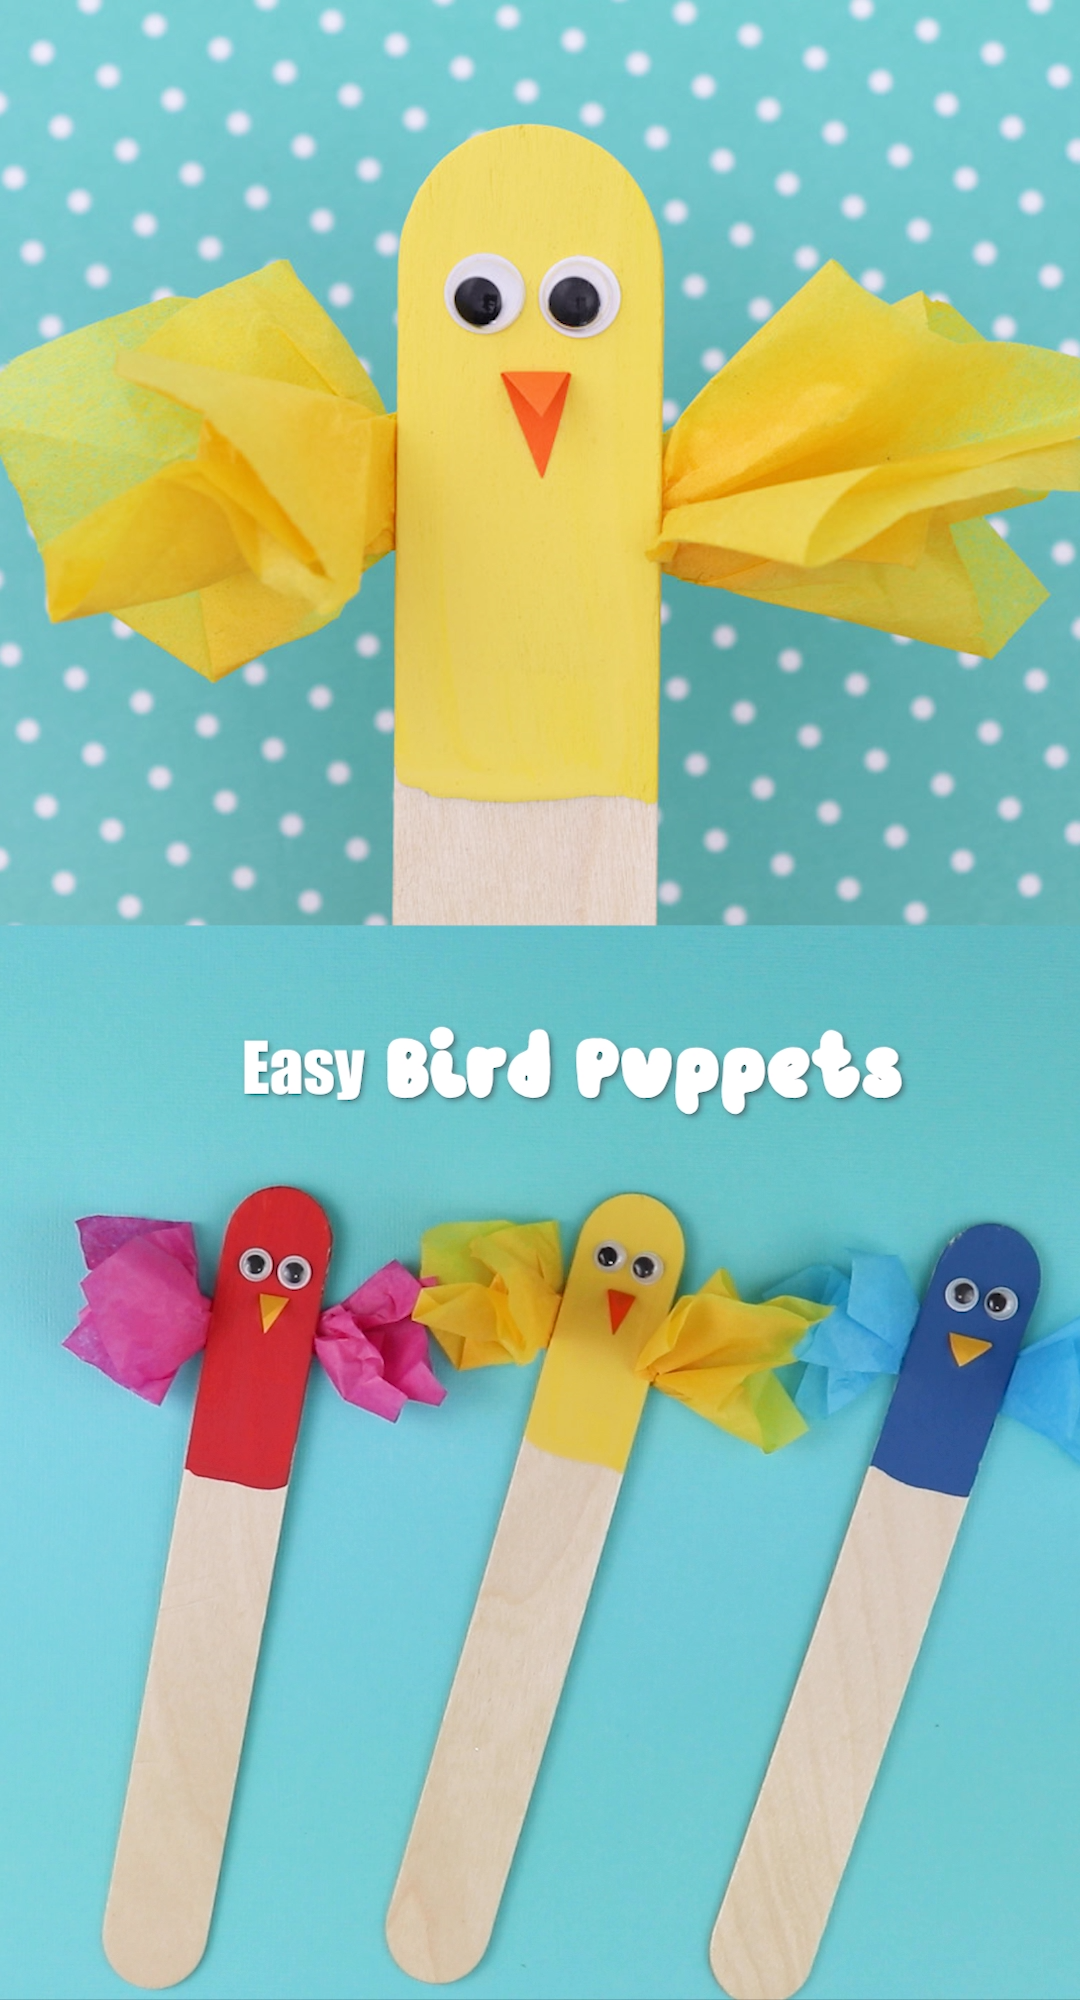 Craft stick bird puppets #paperbagcrafts